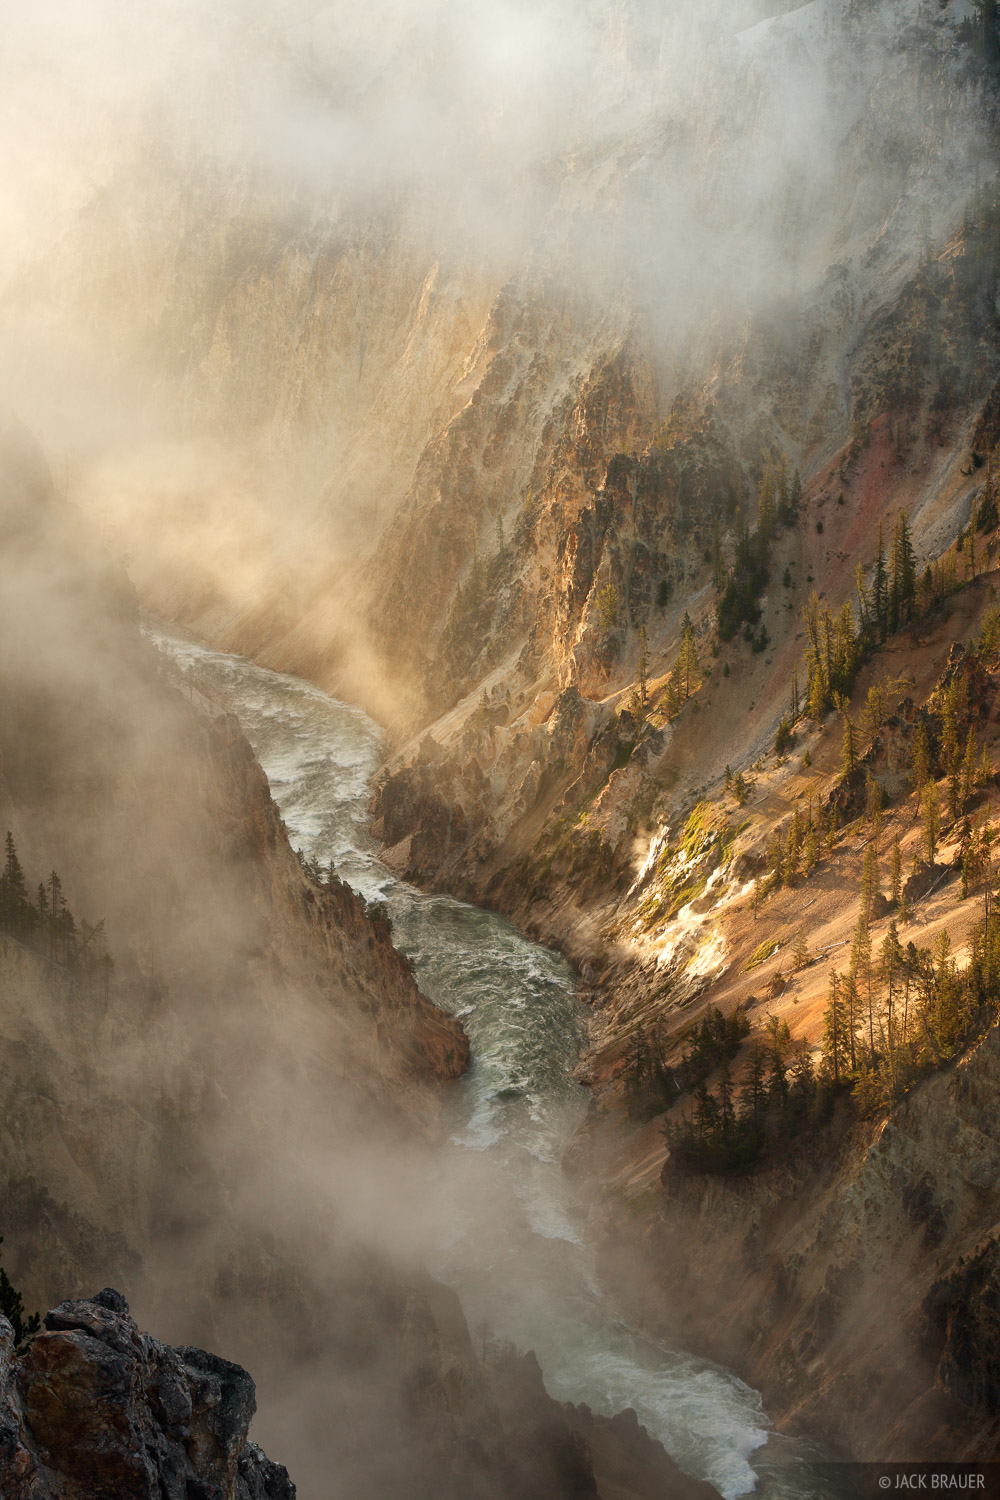 Grand Canyon of the Yellowstone, Yellowstone National Park, Wyoming, sunrise, Lookout Point, photo